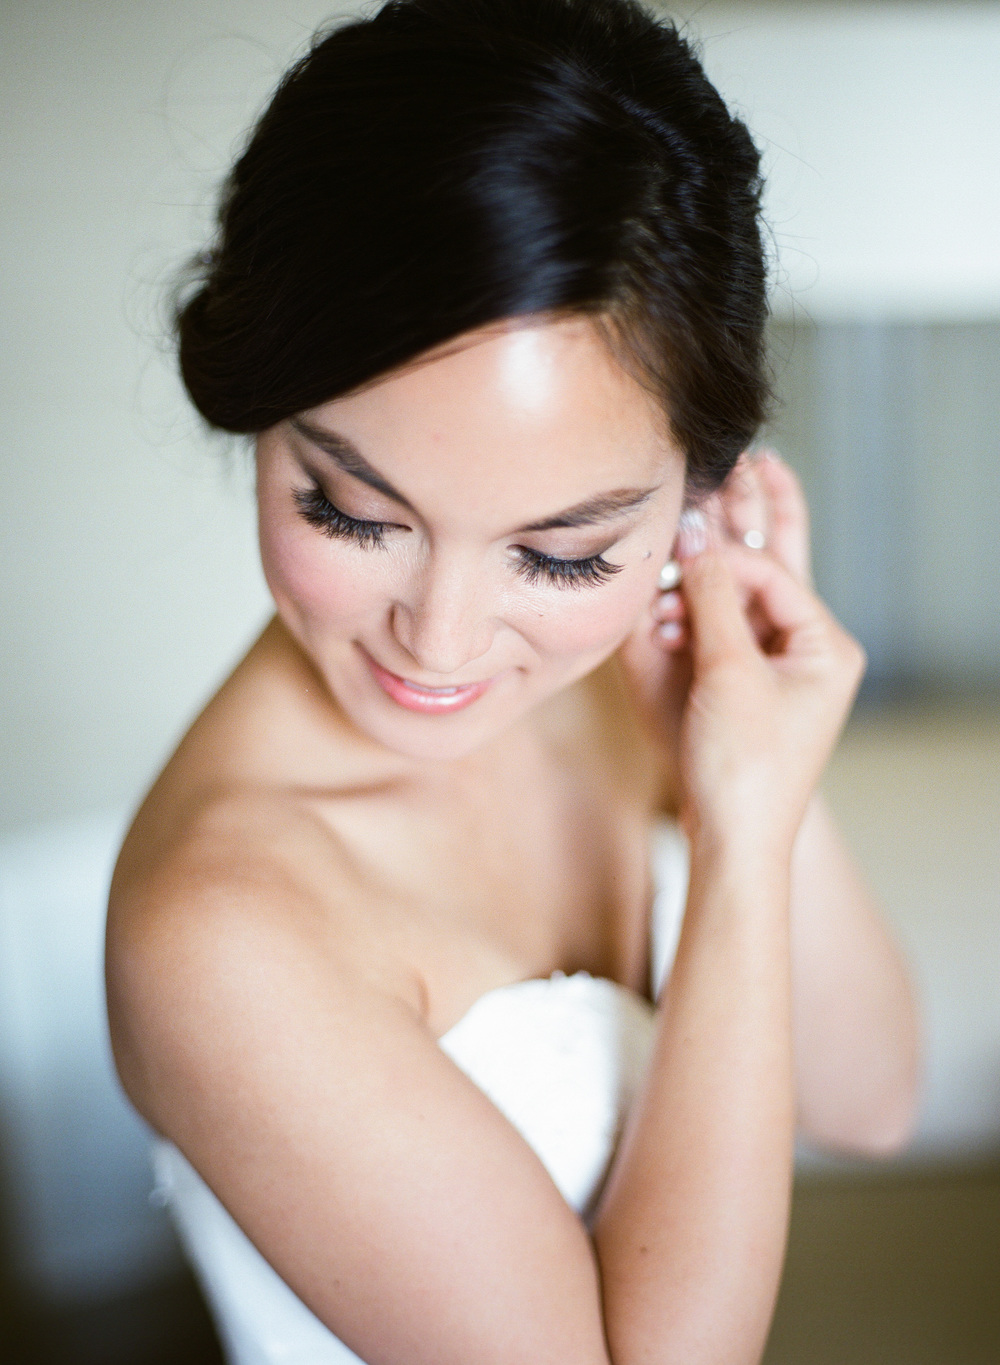 Pasadena Westin Hotel Wedding Film Photographer